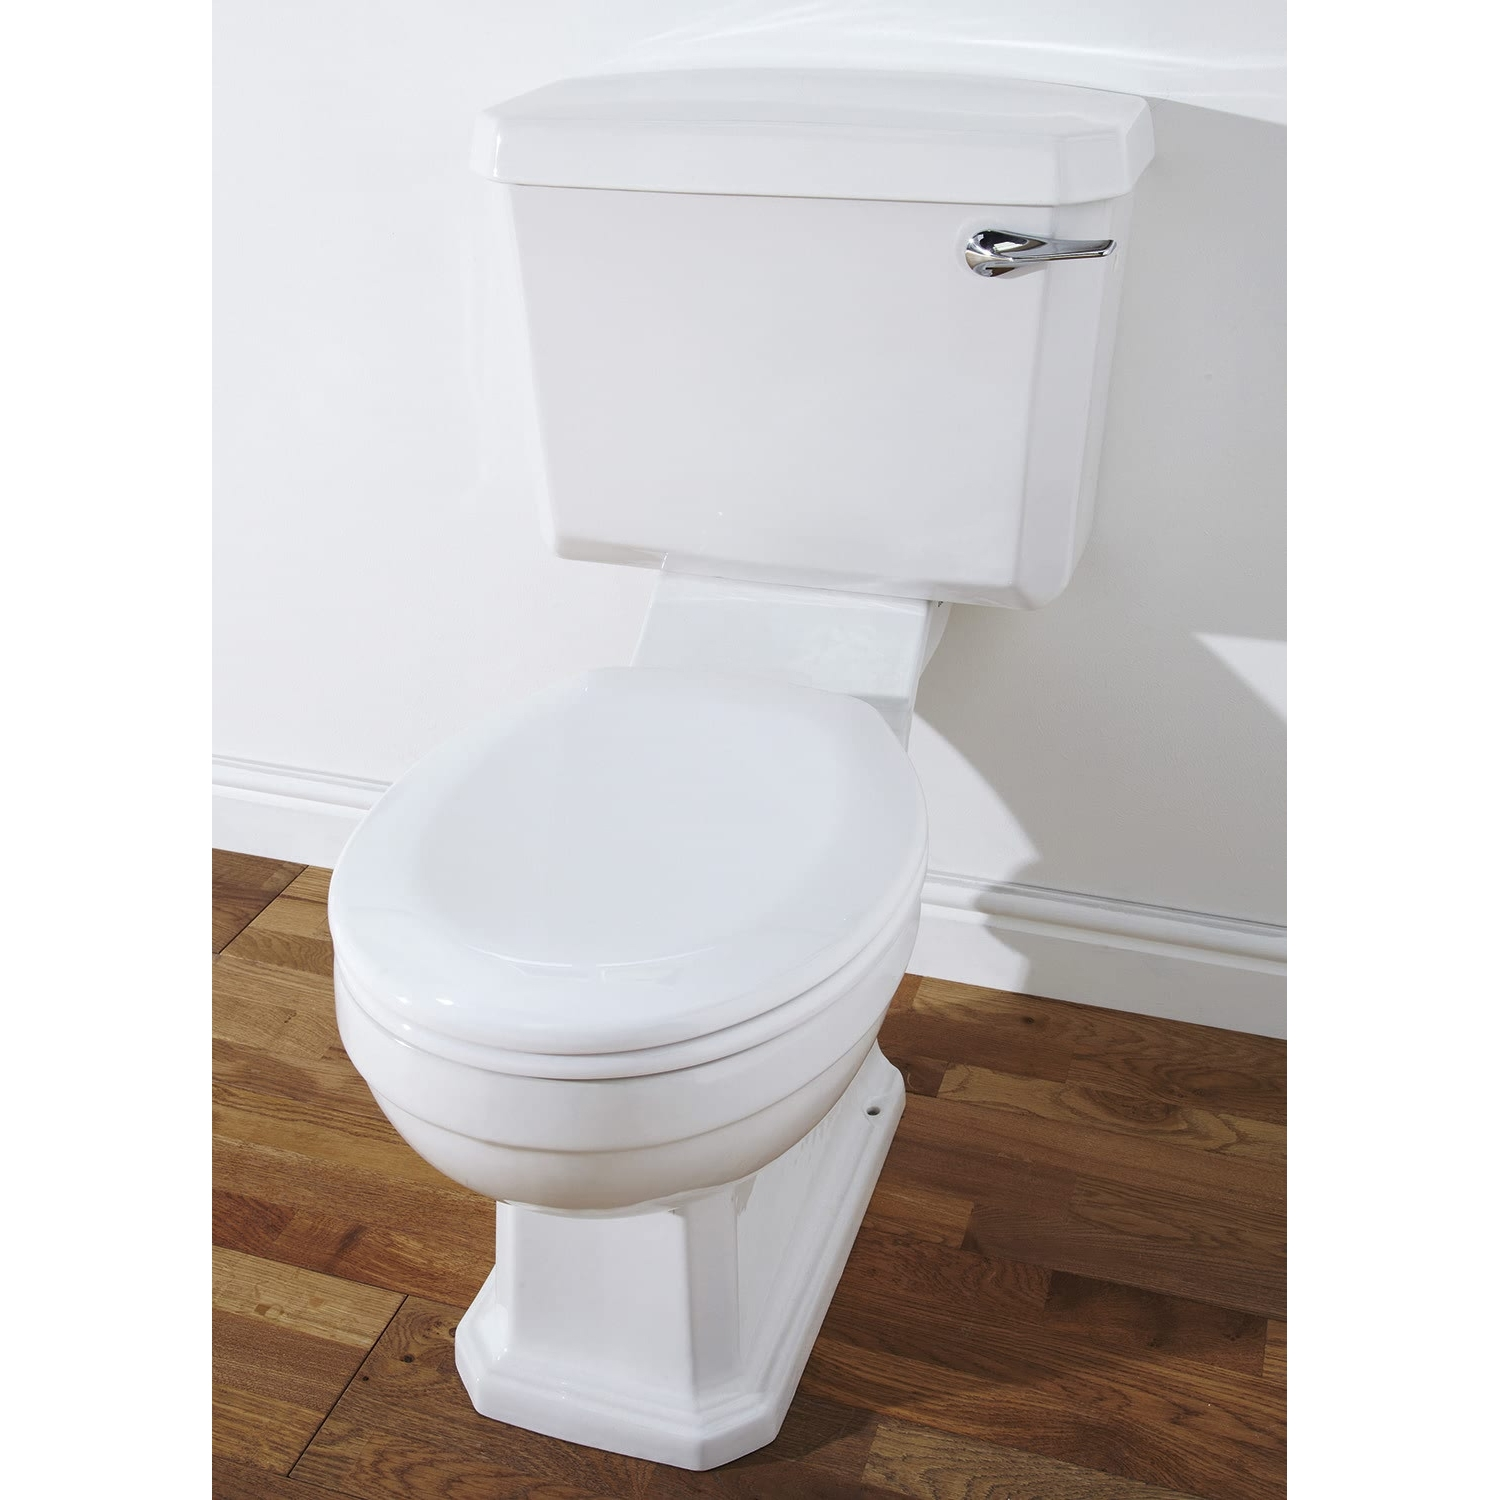 Verona Hamilton Close Coupled Toilet with Cistern - Soft Close Seat